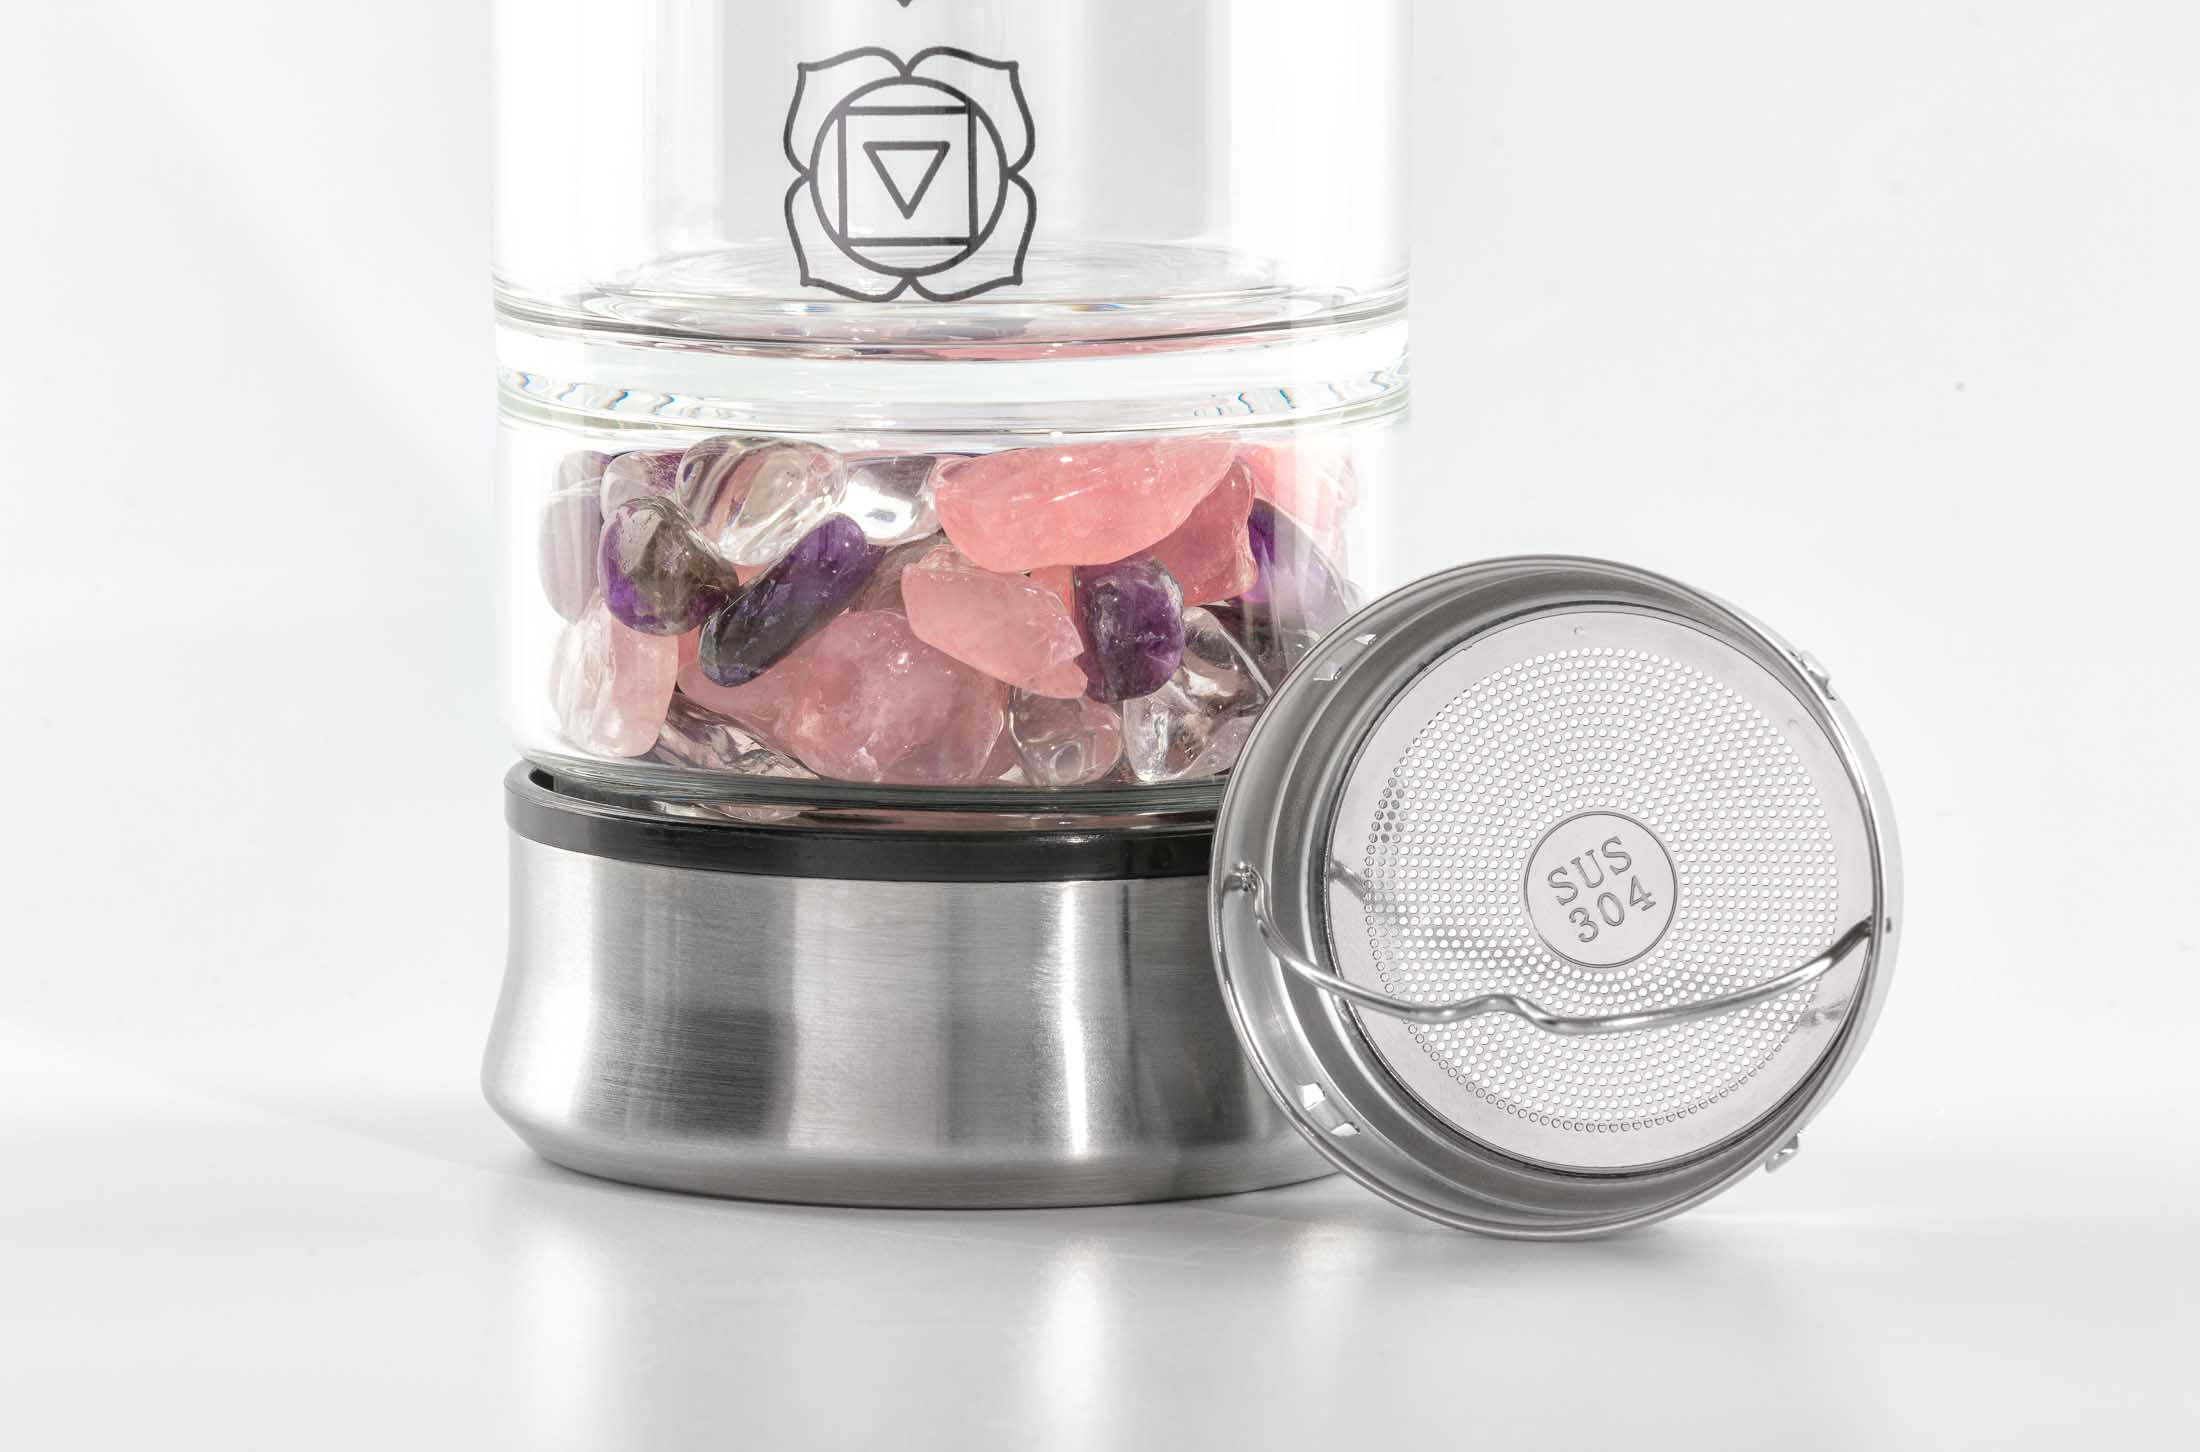 Water Infuser-Closeup filter and stones - Amazon product photography